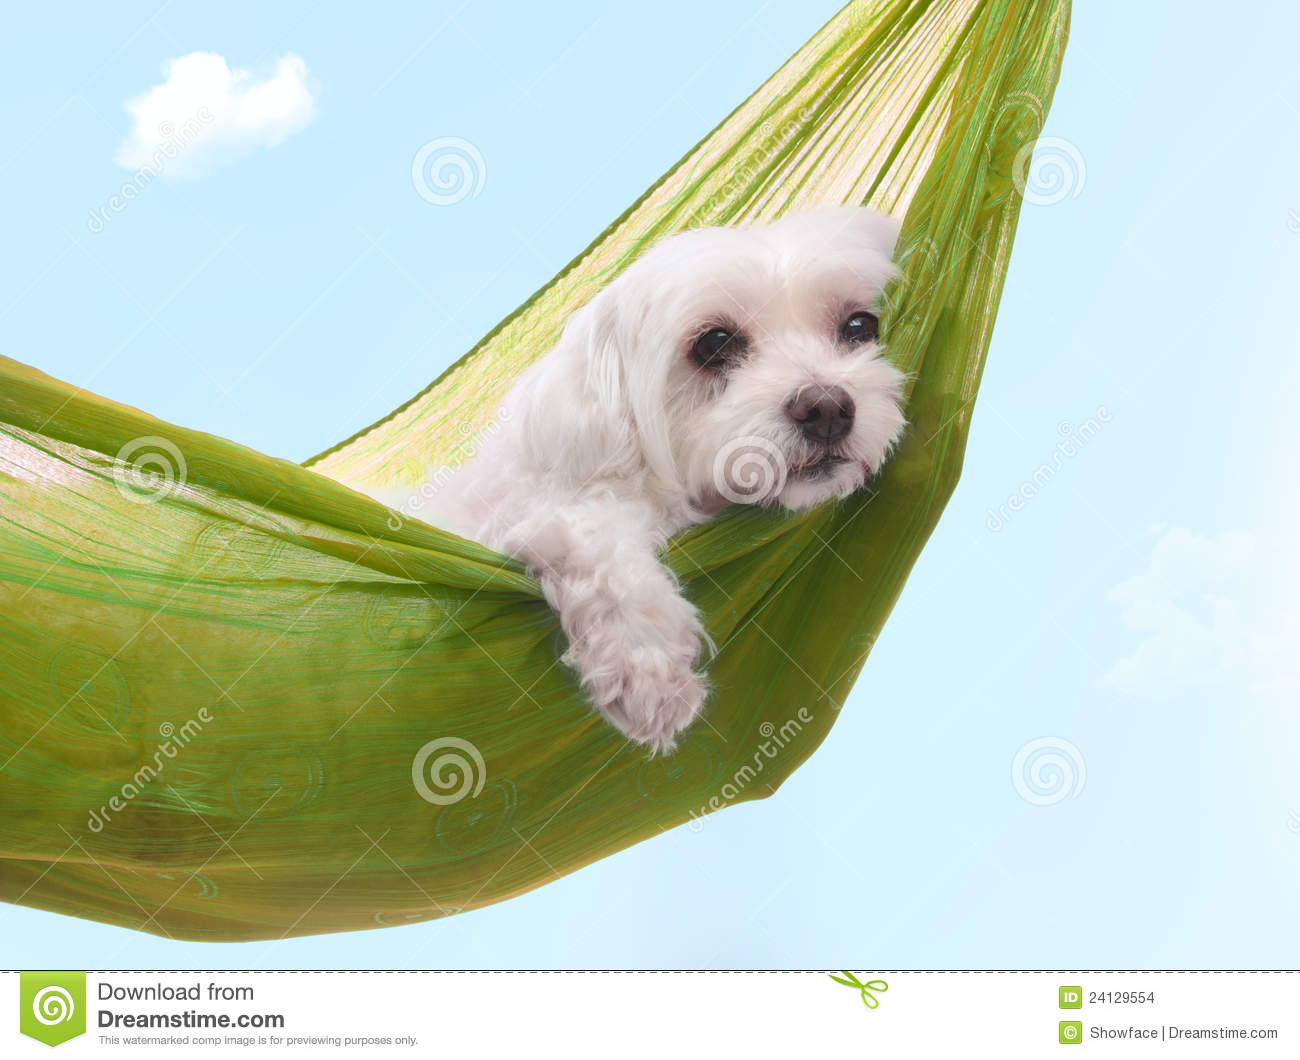 lazy dazy dog days of summer stock images image 24129554 clip art puppies peeing clip art puppies tgif